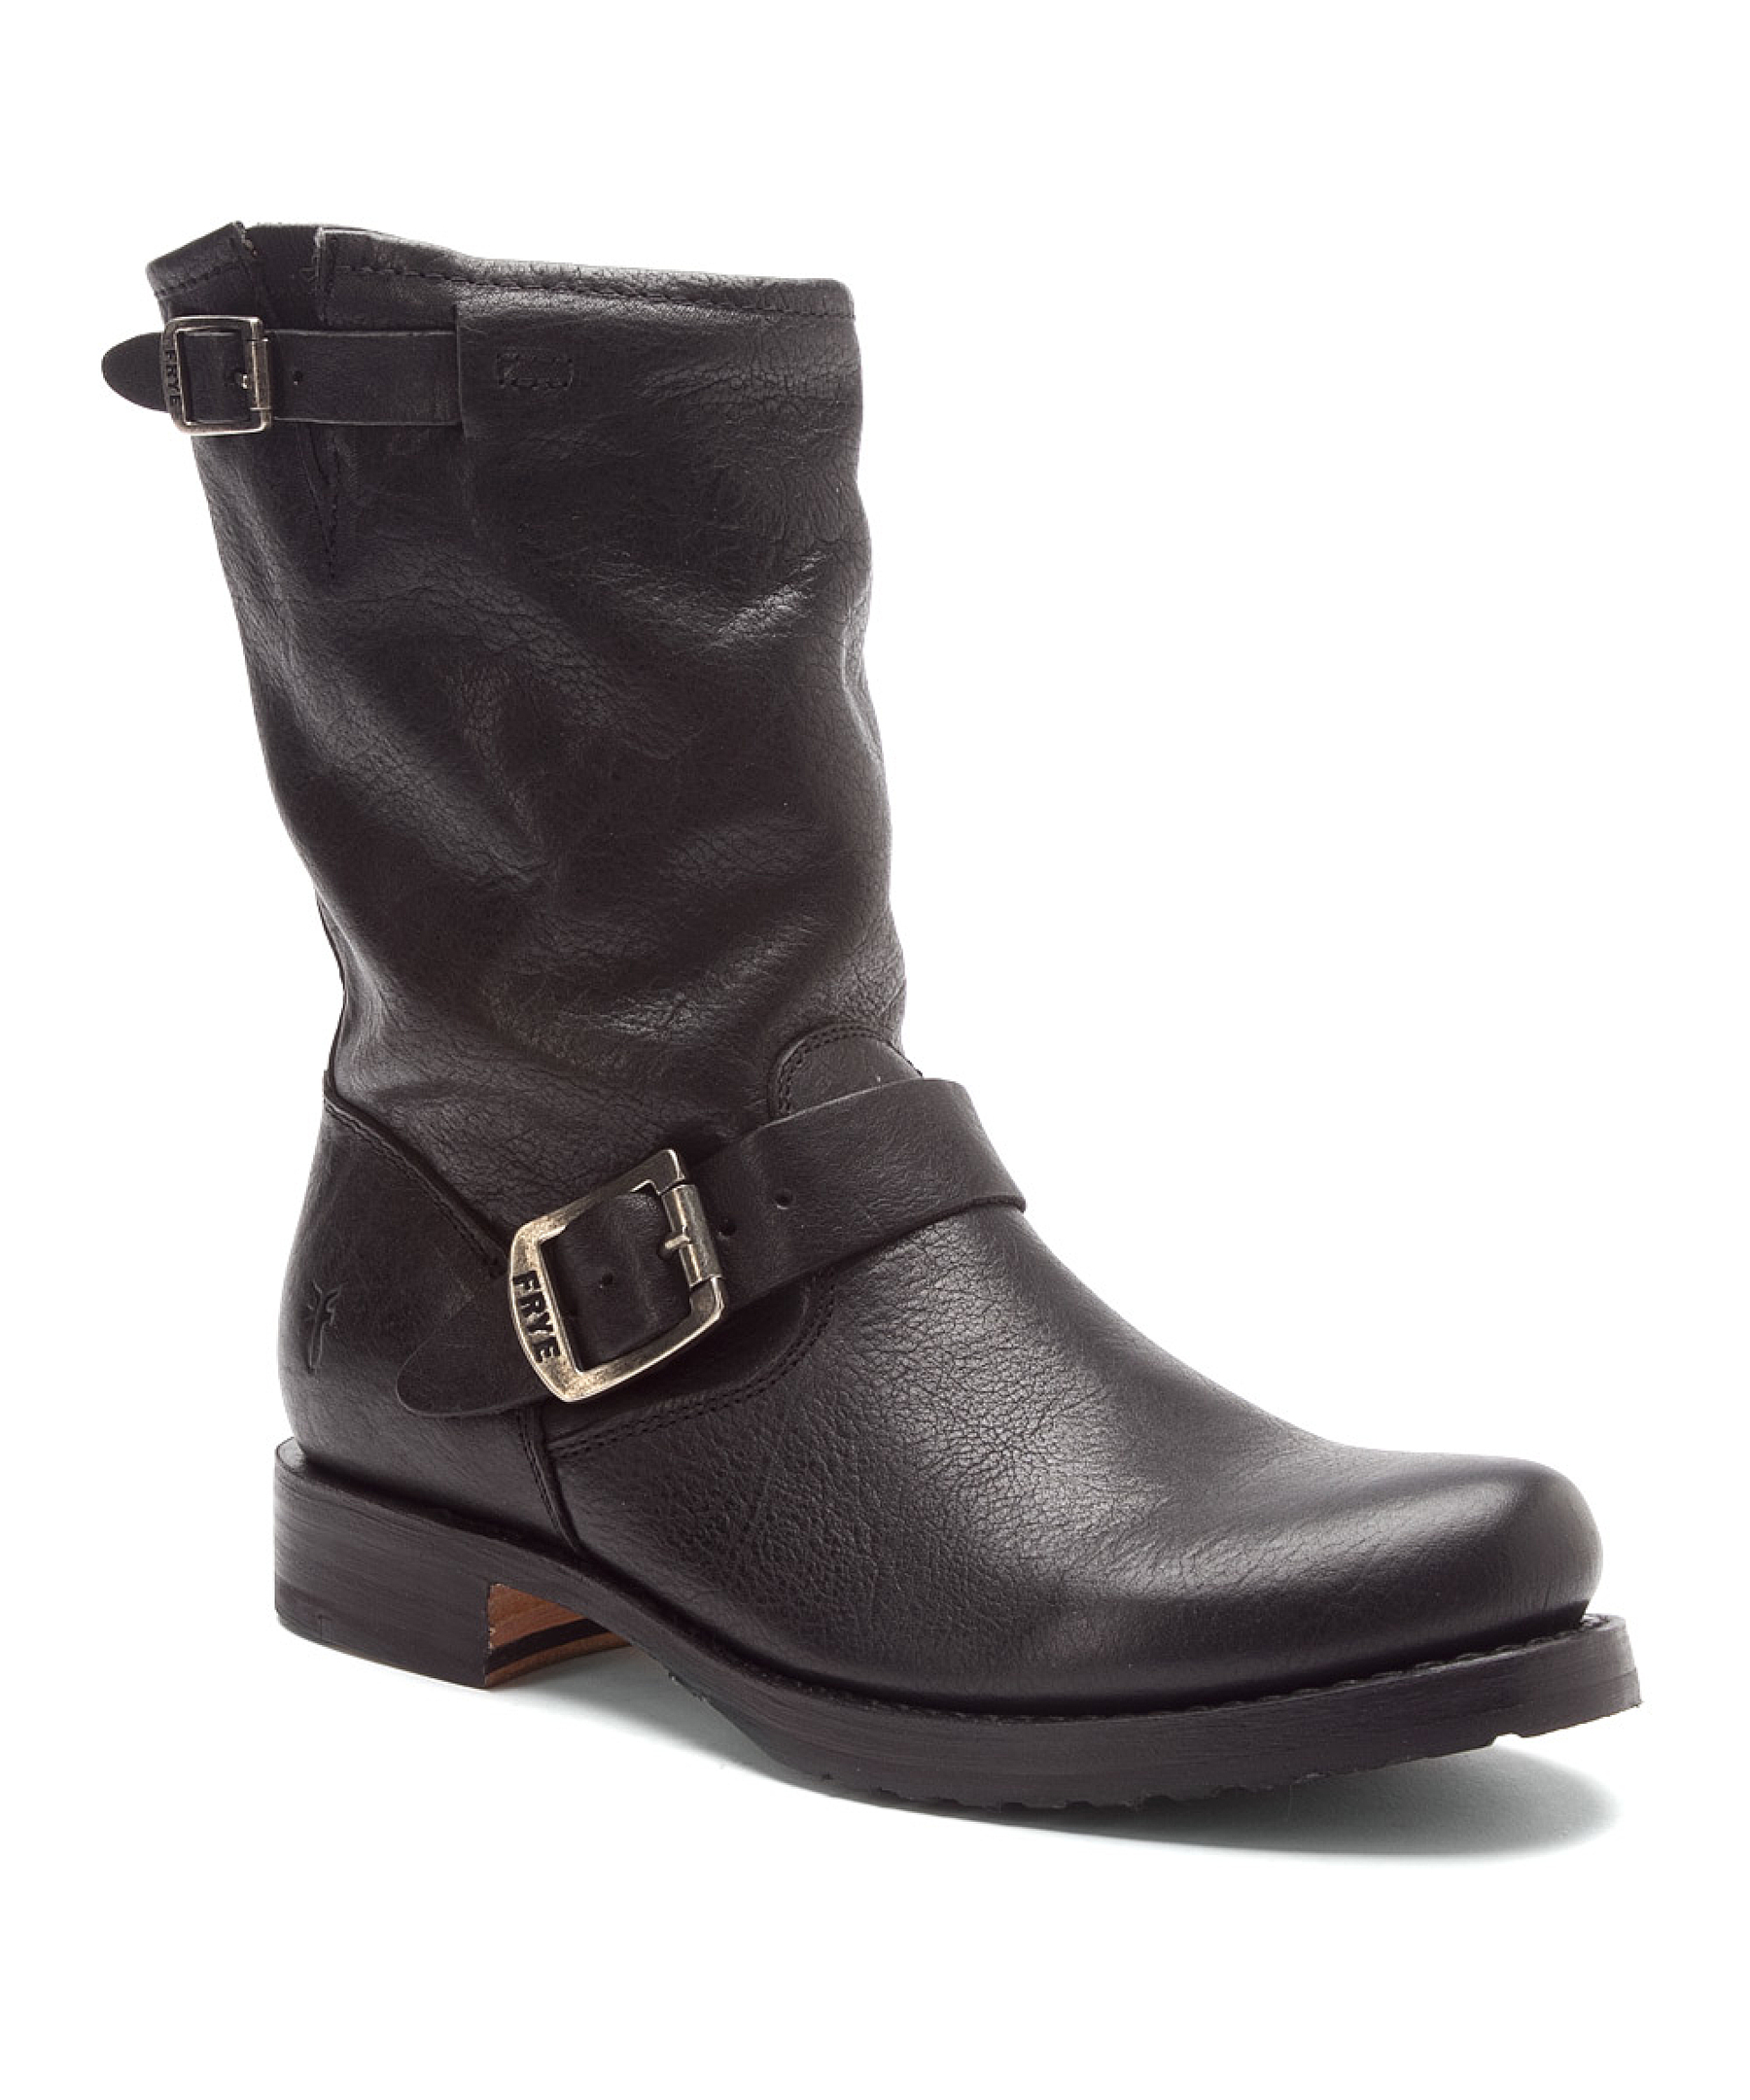 New Gabor Boots  Eclectic Ladies Calf High Boots In Black Leather Mozimo